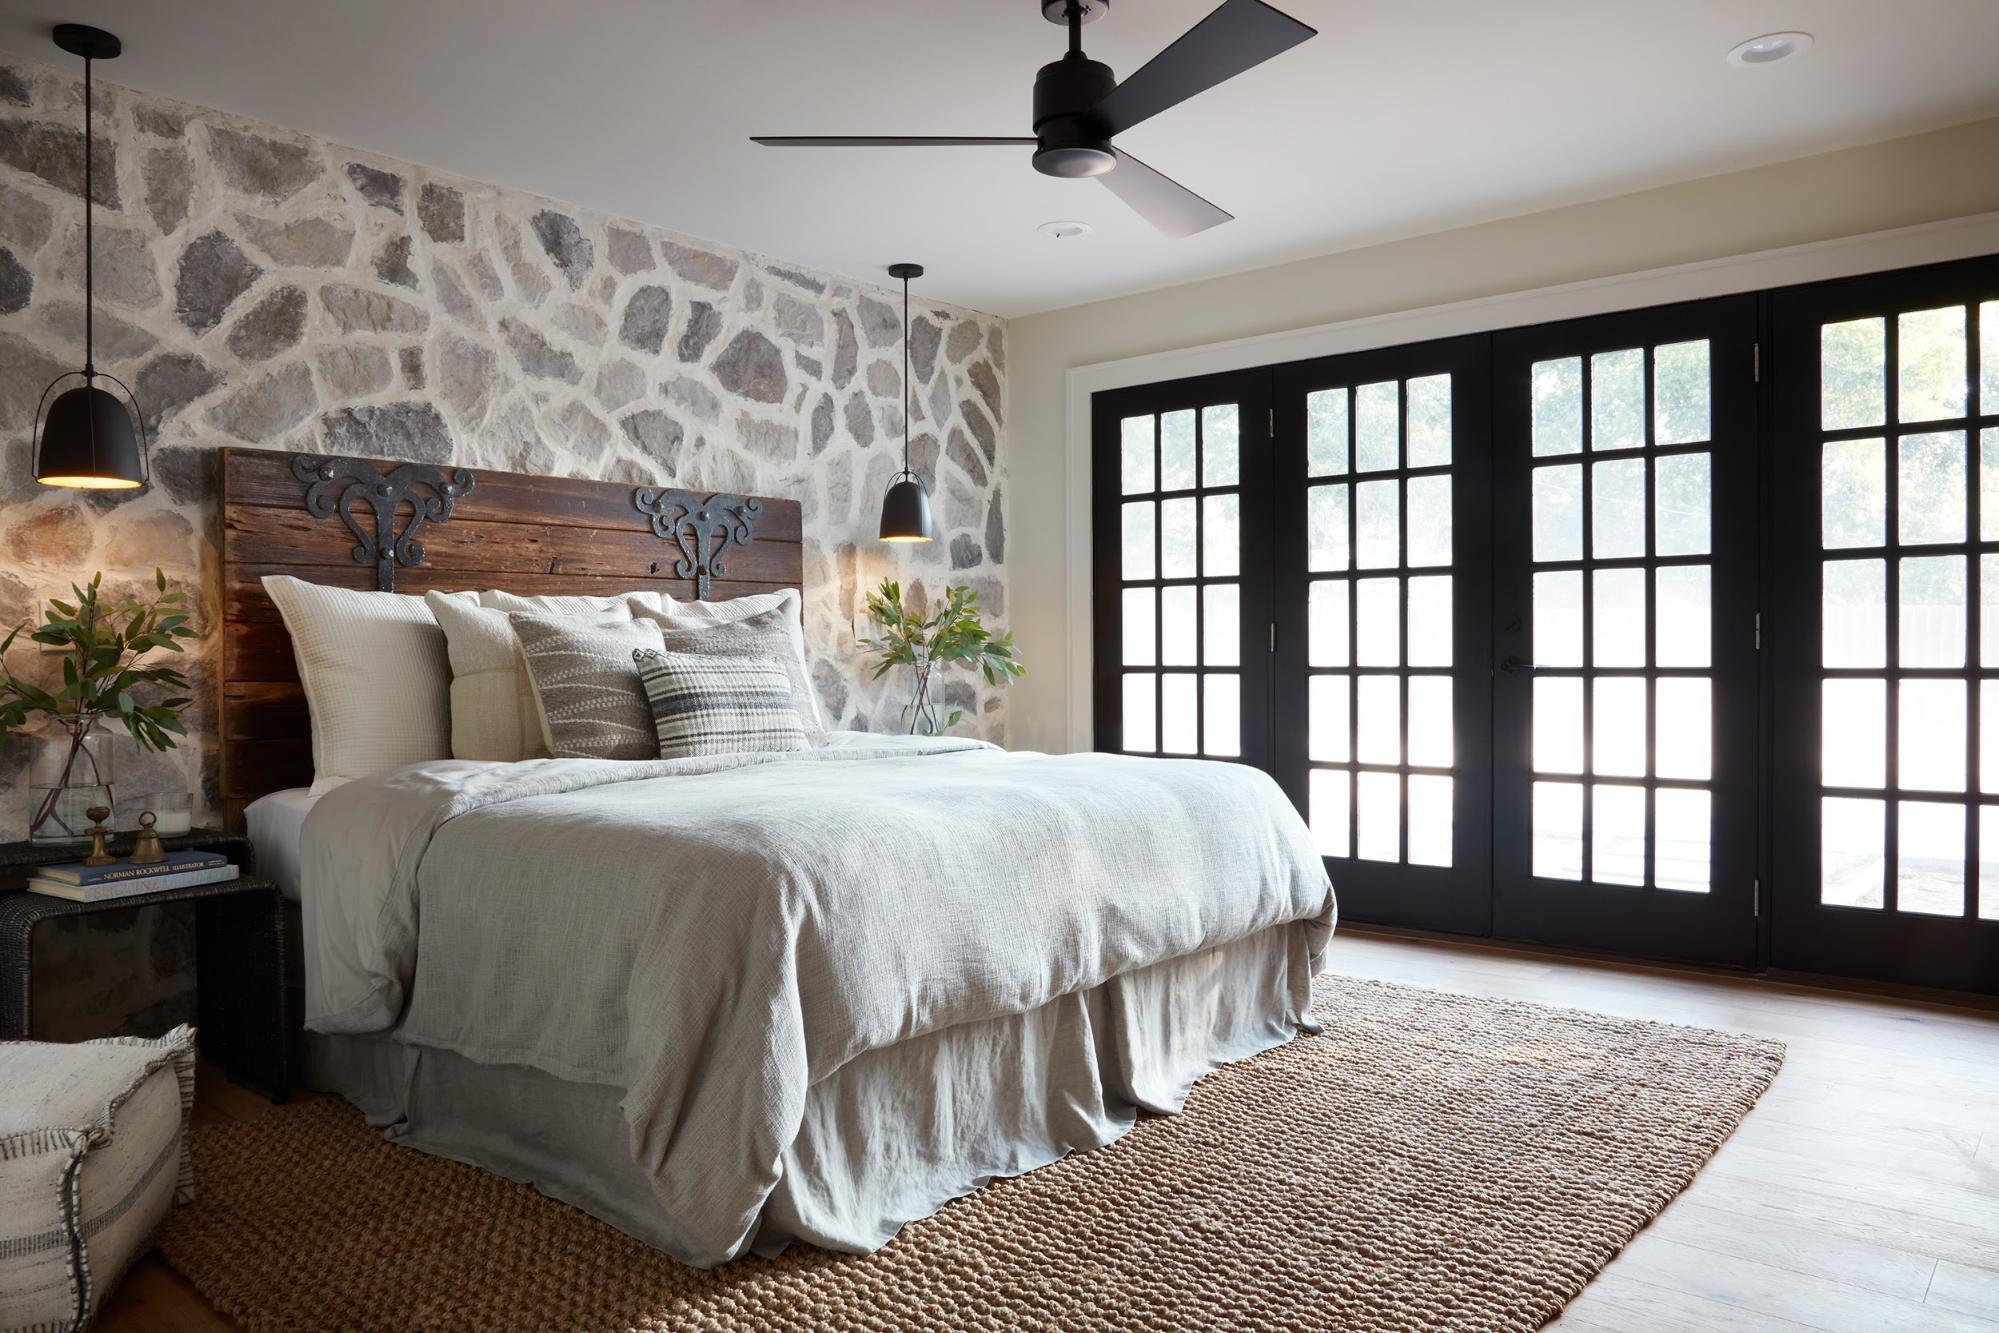 Headboards In Front Of Windows Joanna Gaines Best Advice For Designing A Relaxing Master Bedroom